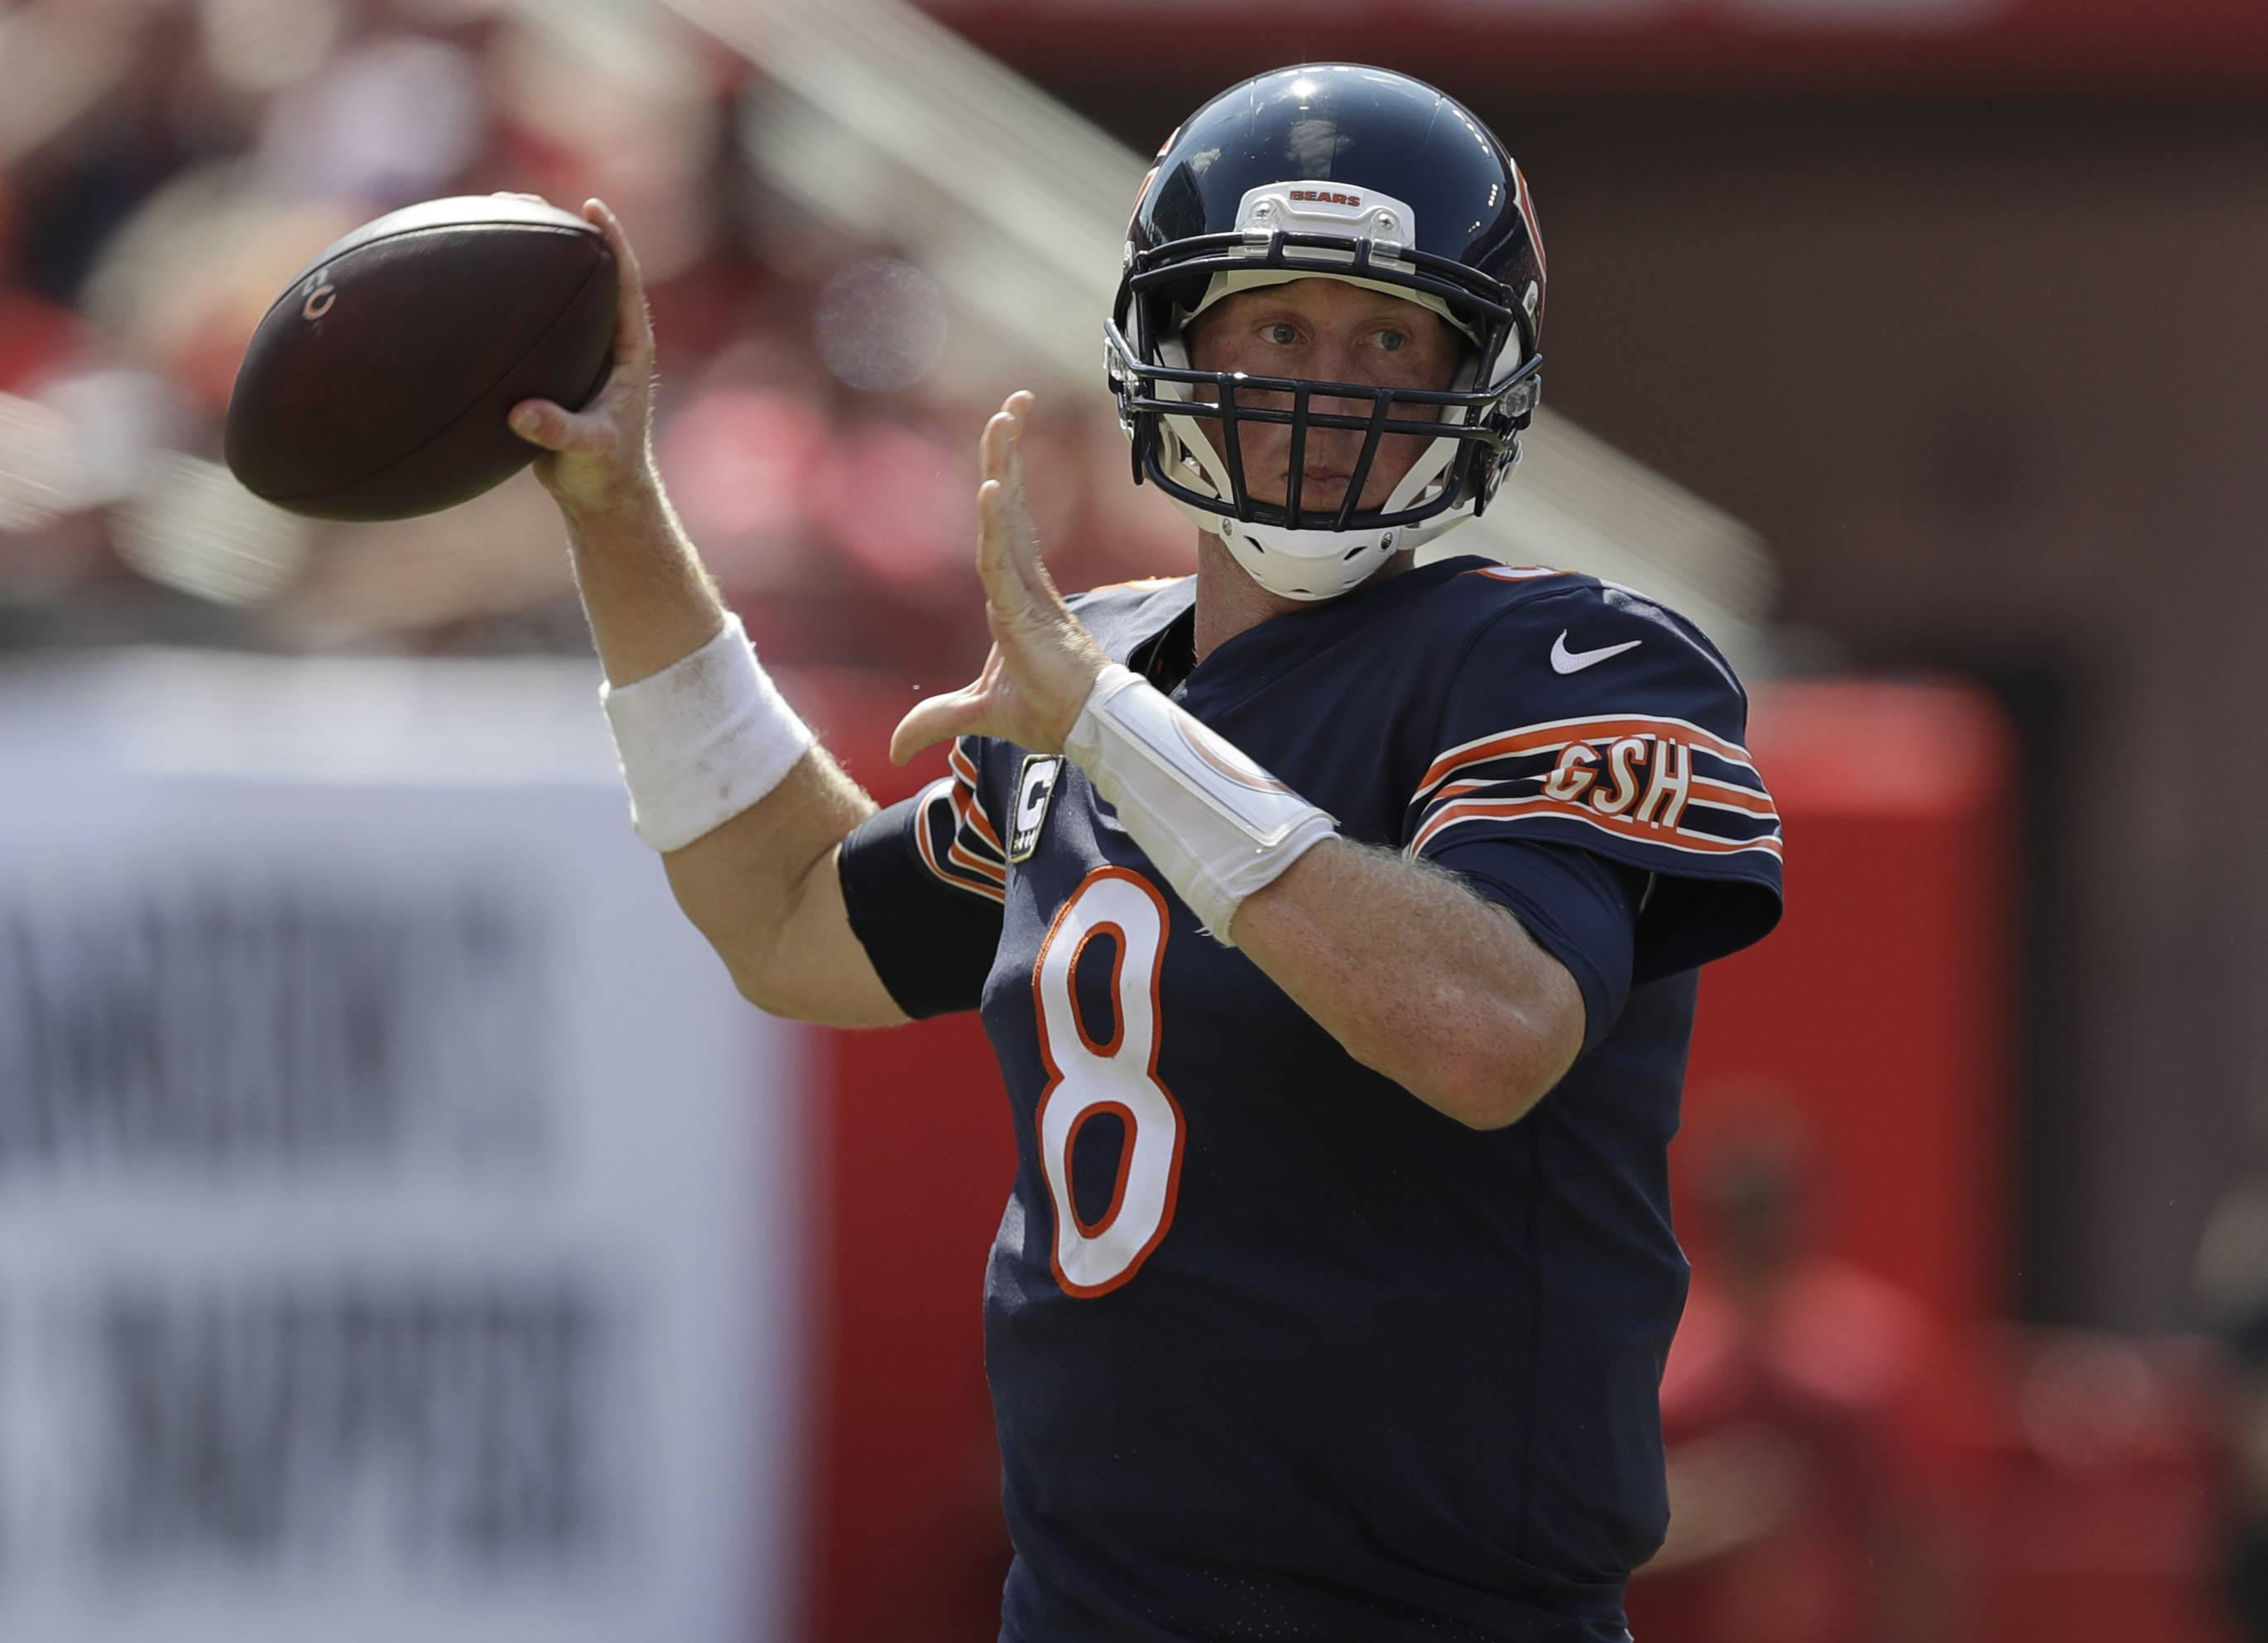 Chicago Bears quarterback Mike Glennon (8) looks to pass the ball, during the second half of an NFL football game against the Tampa Bay Buccaneers, Sunday, Sept. 17, 2017, in Tampa, Fla. (AP Photo/Chris O'Meara)